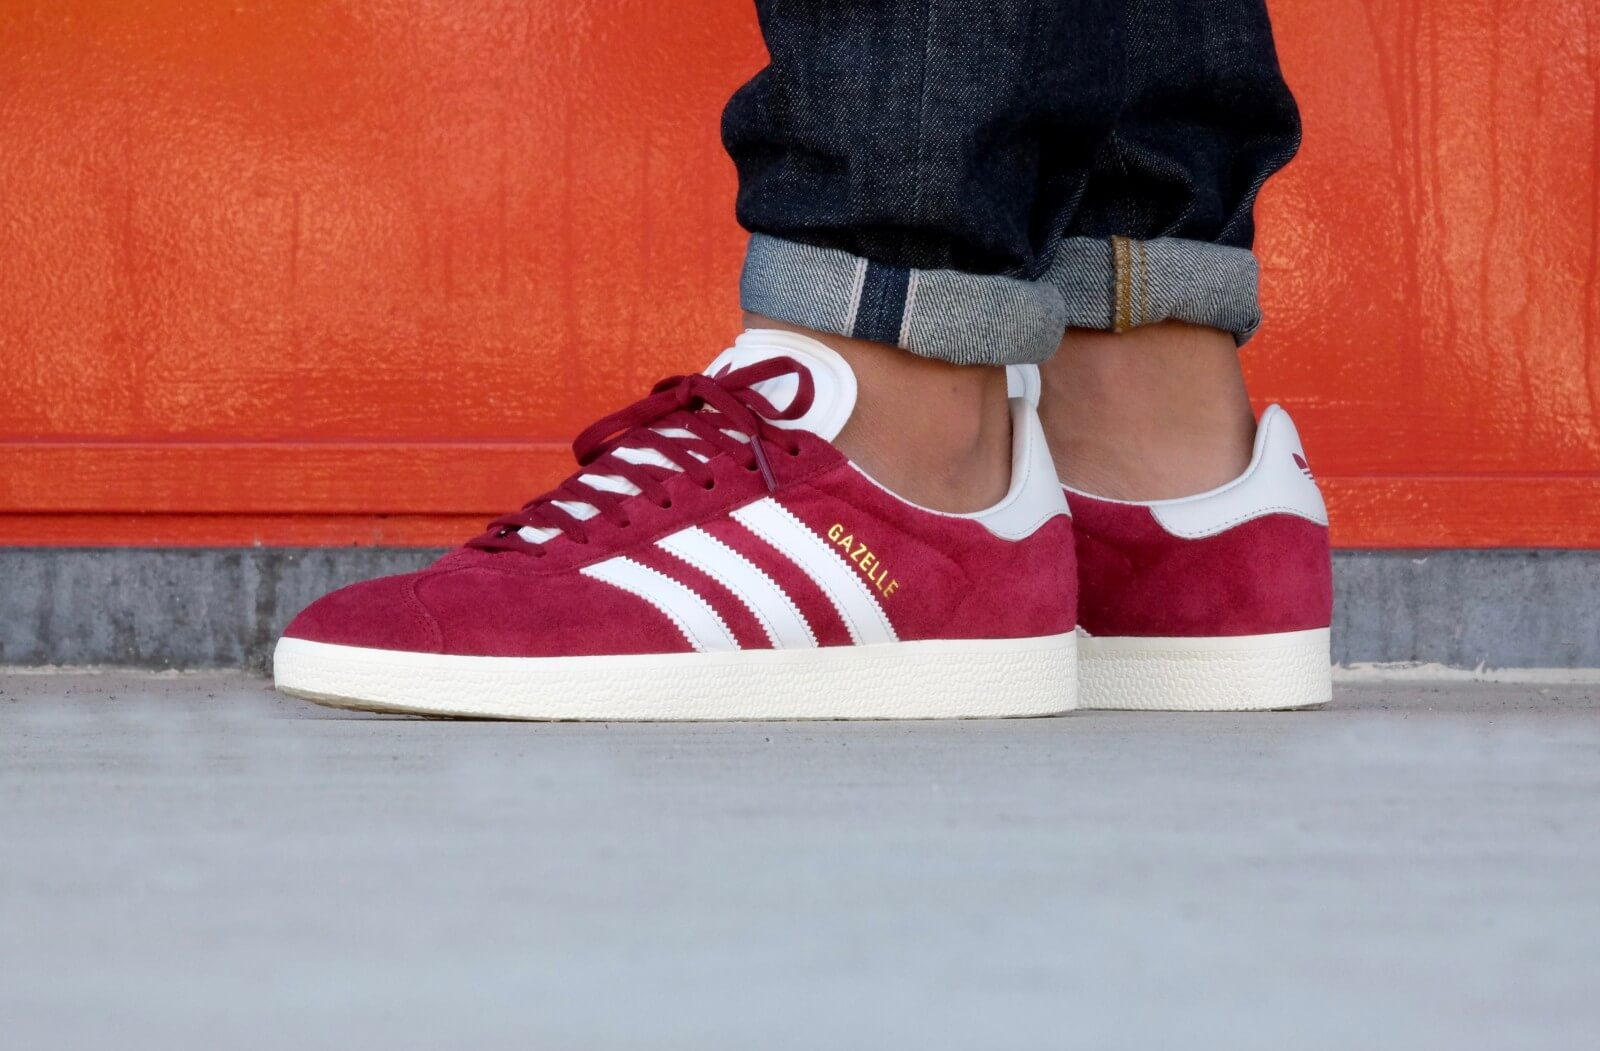 adidas gazelle burgundy white gold metallic